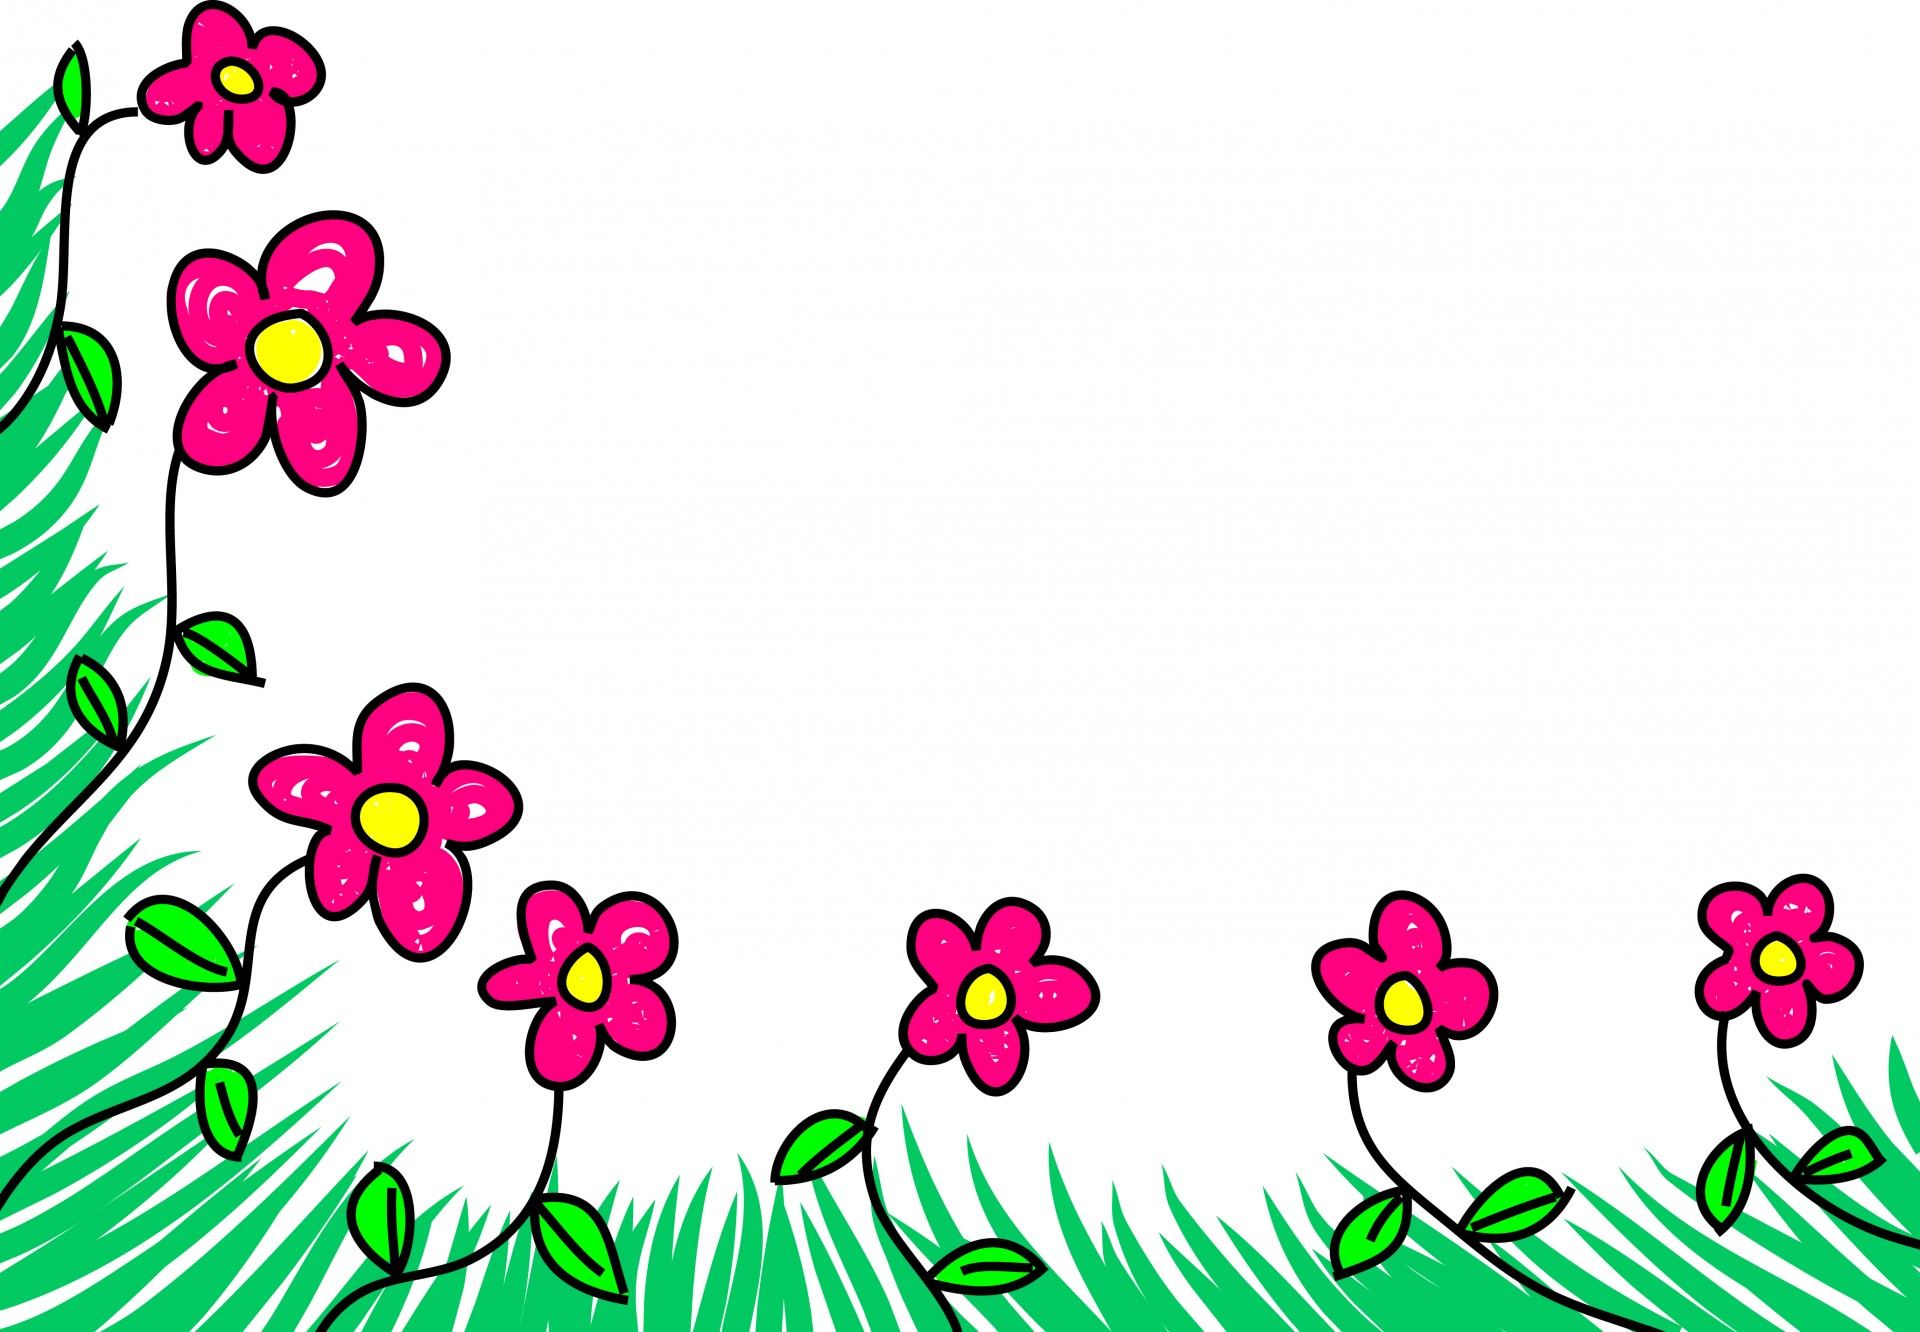 Cartoon picture of flowers clip art transparent stock Cartoon Flowers Free Stock Photo - Public Domain Pictures clip art transparent stock